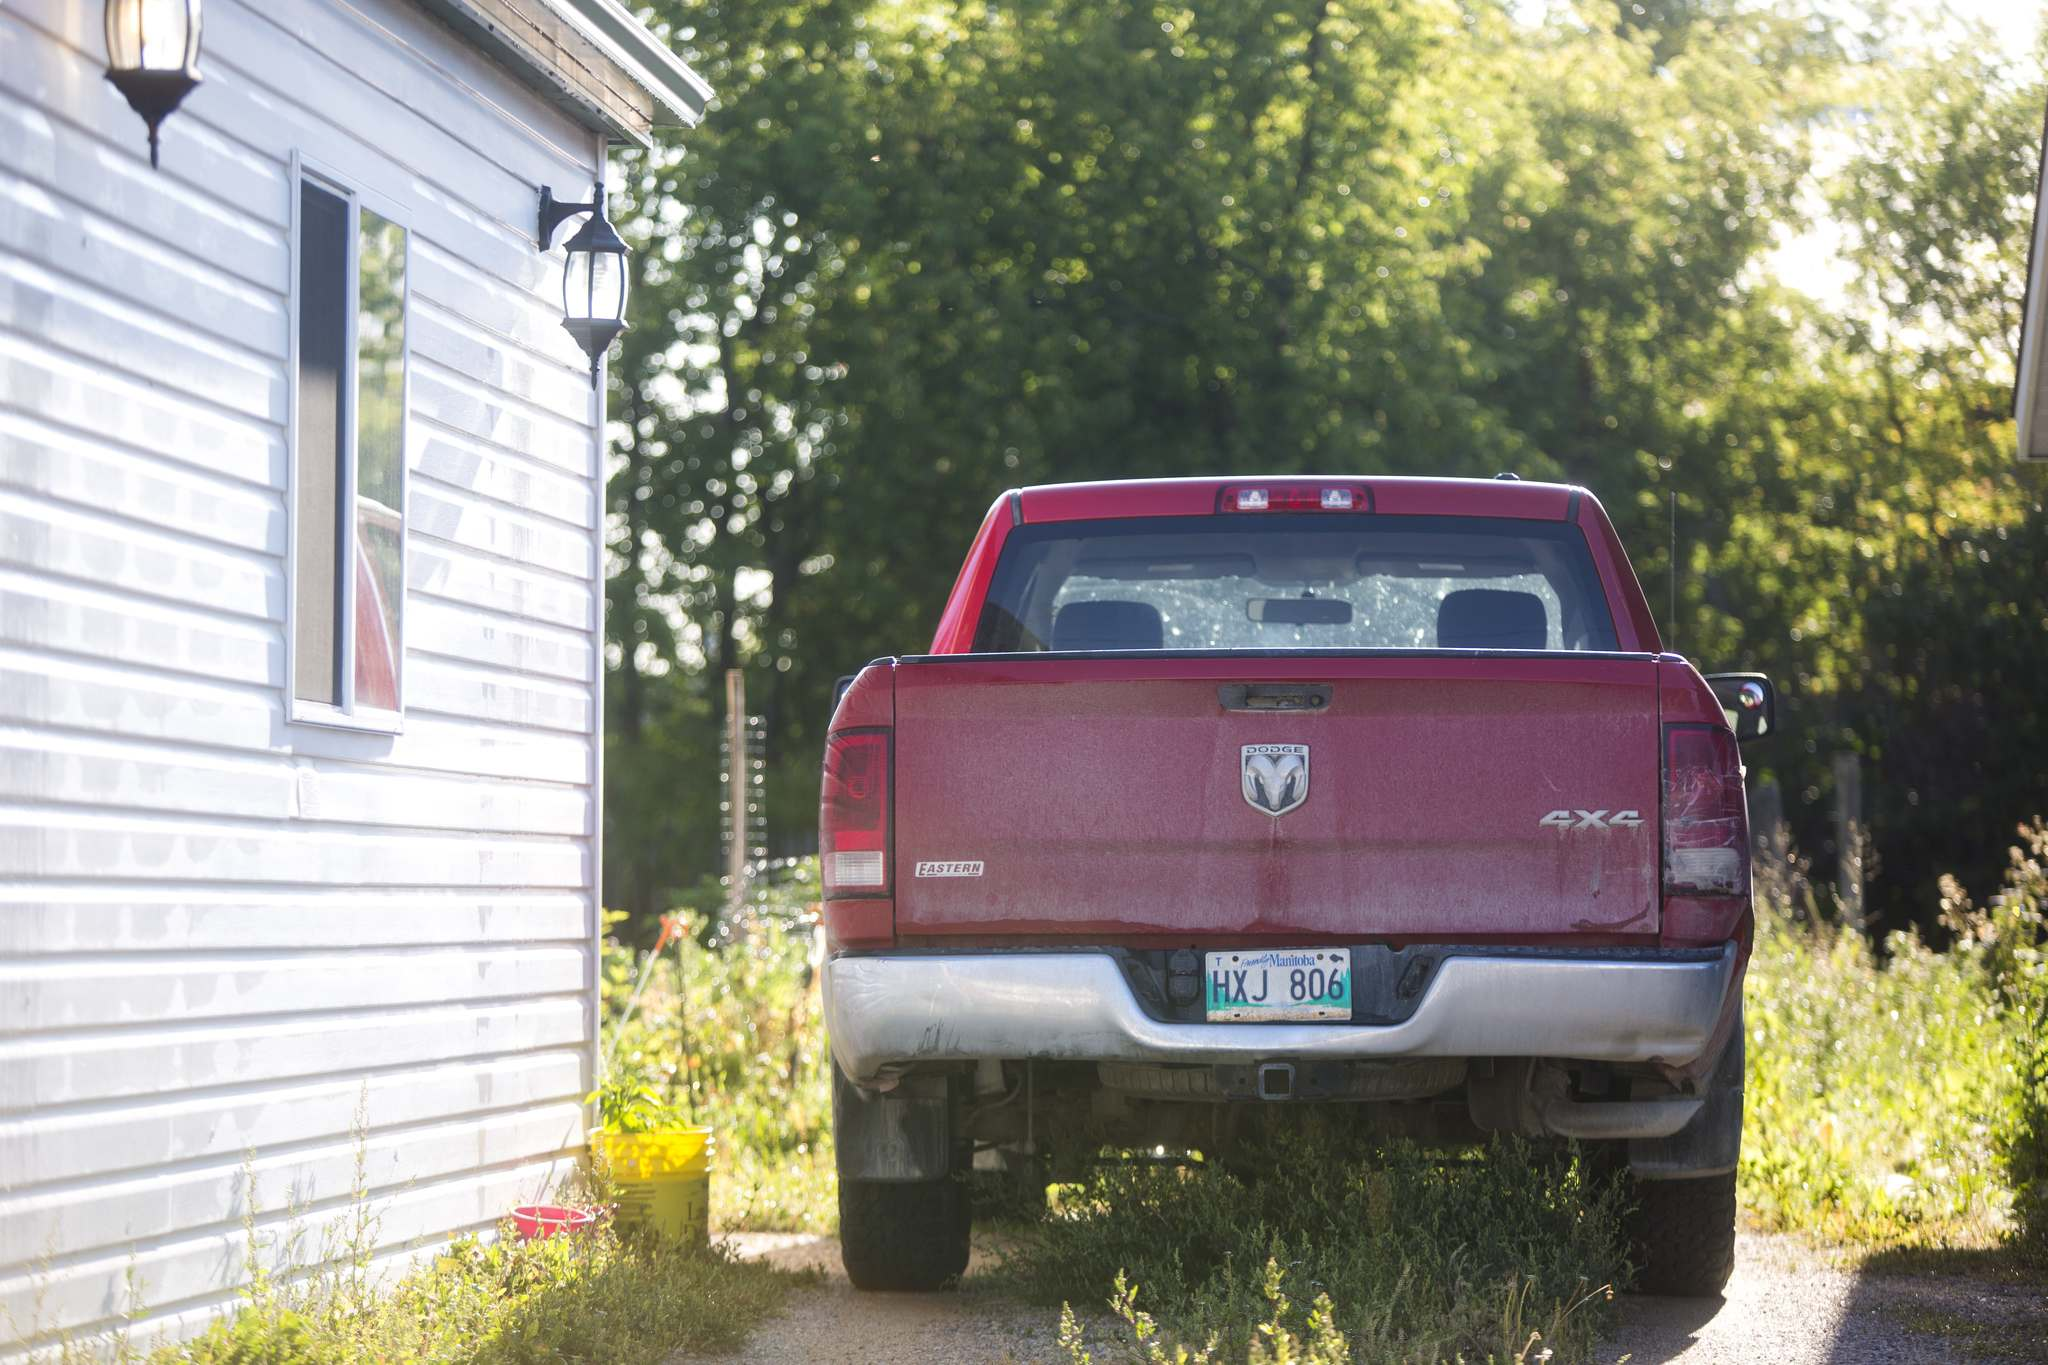 MIKAELA MACKENZIE / WINNIPEG FREE PRESS FILES</p><p>RCMP officers raided the Beausejour home of Patrik Mathews in August. His truck, pictured here shortly after raid, was fond abandoned near the U.S. border.</p>